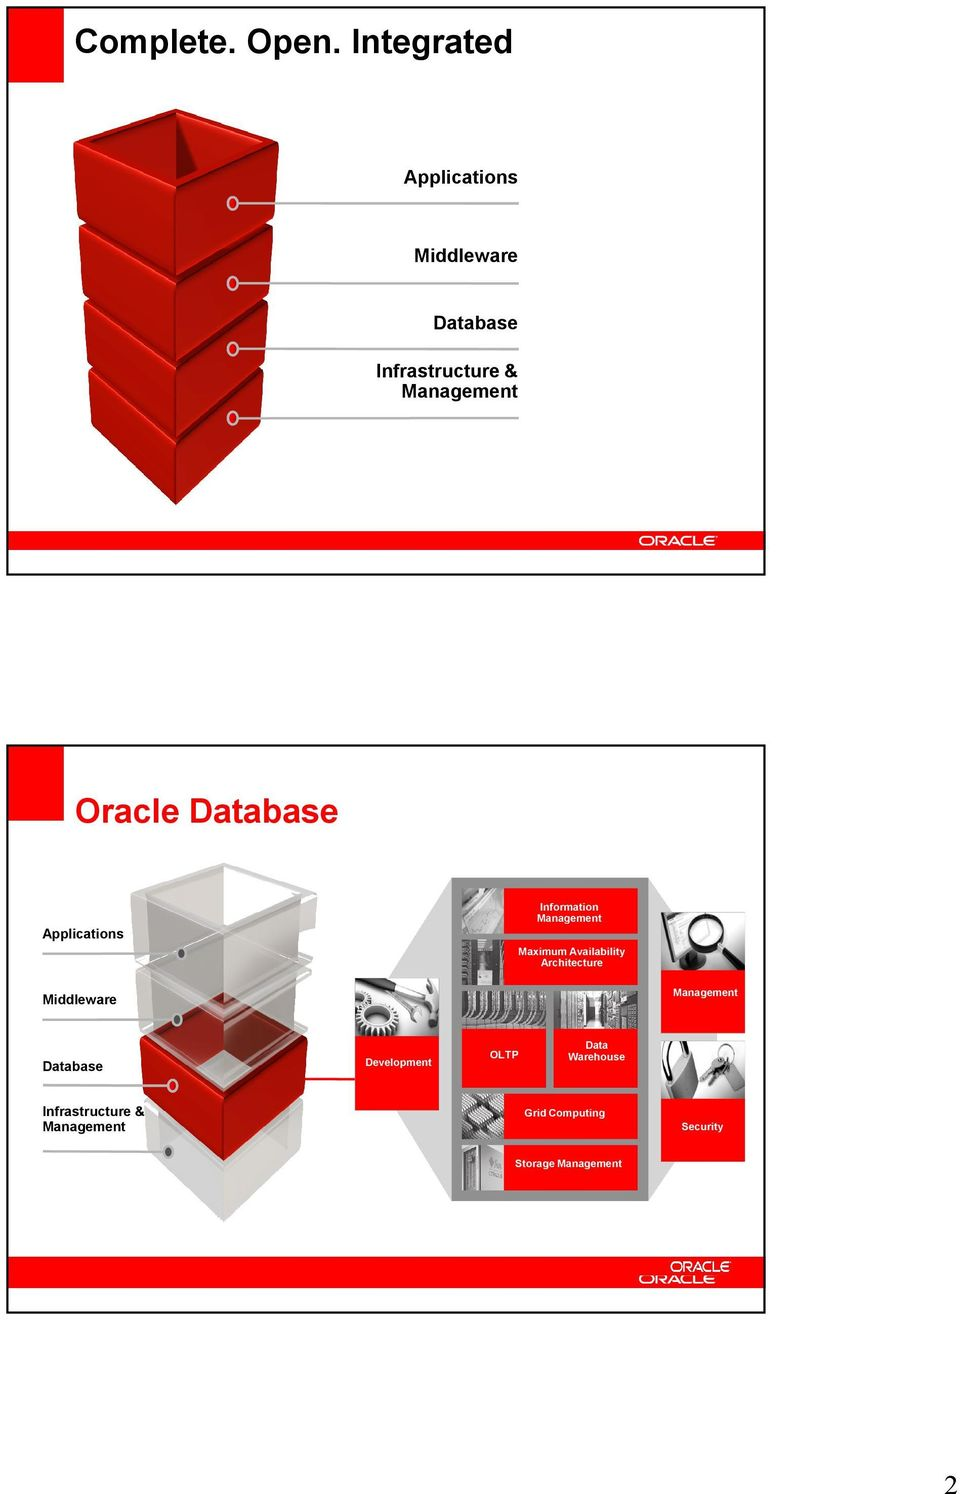 Oracle Database Applications Information Management Maximum Availability